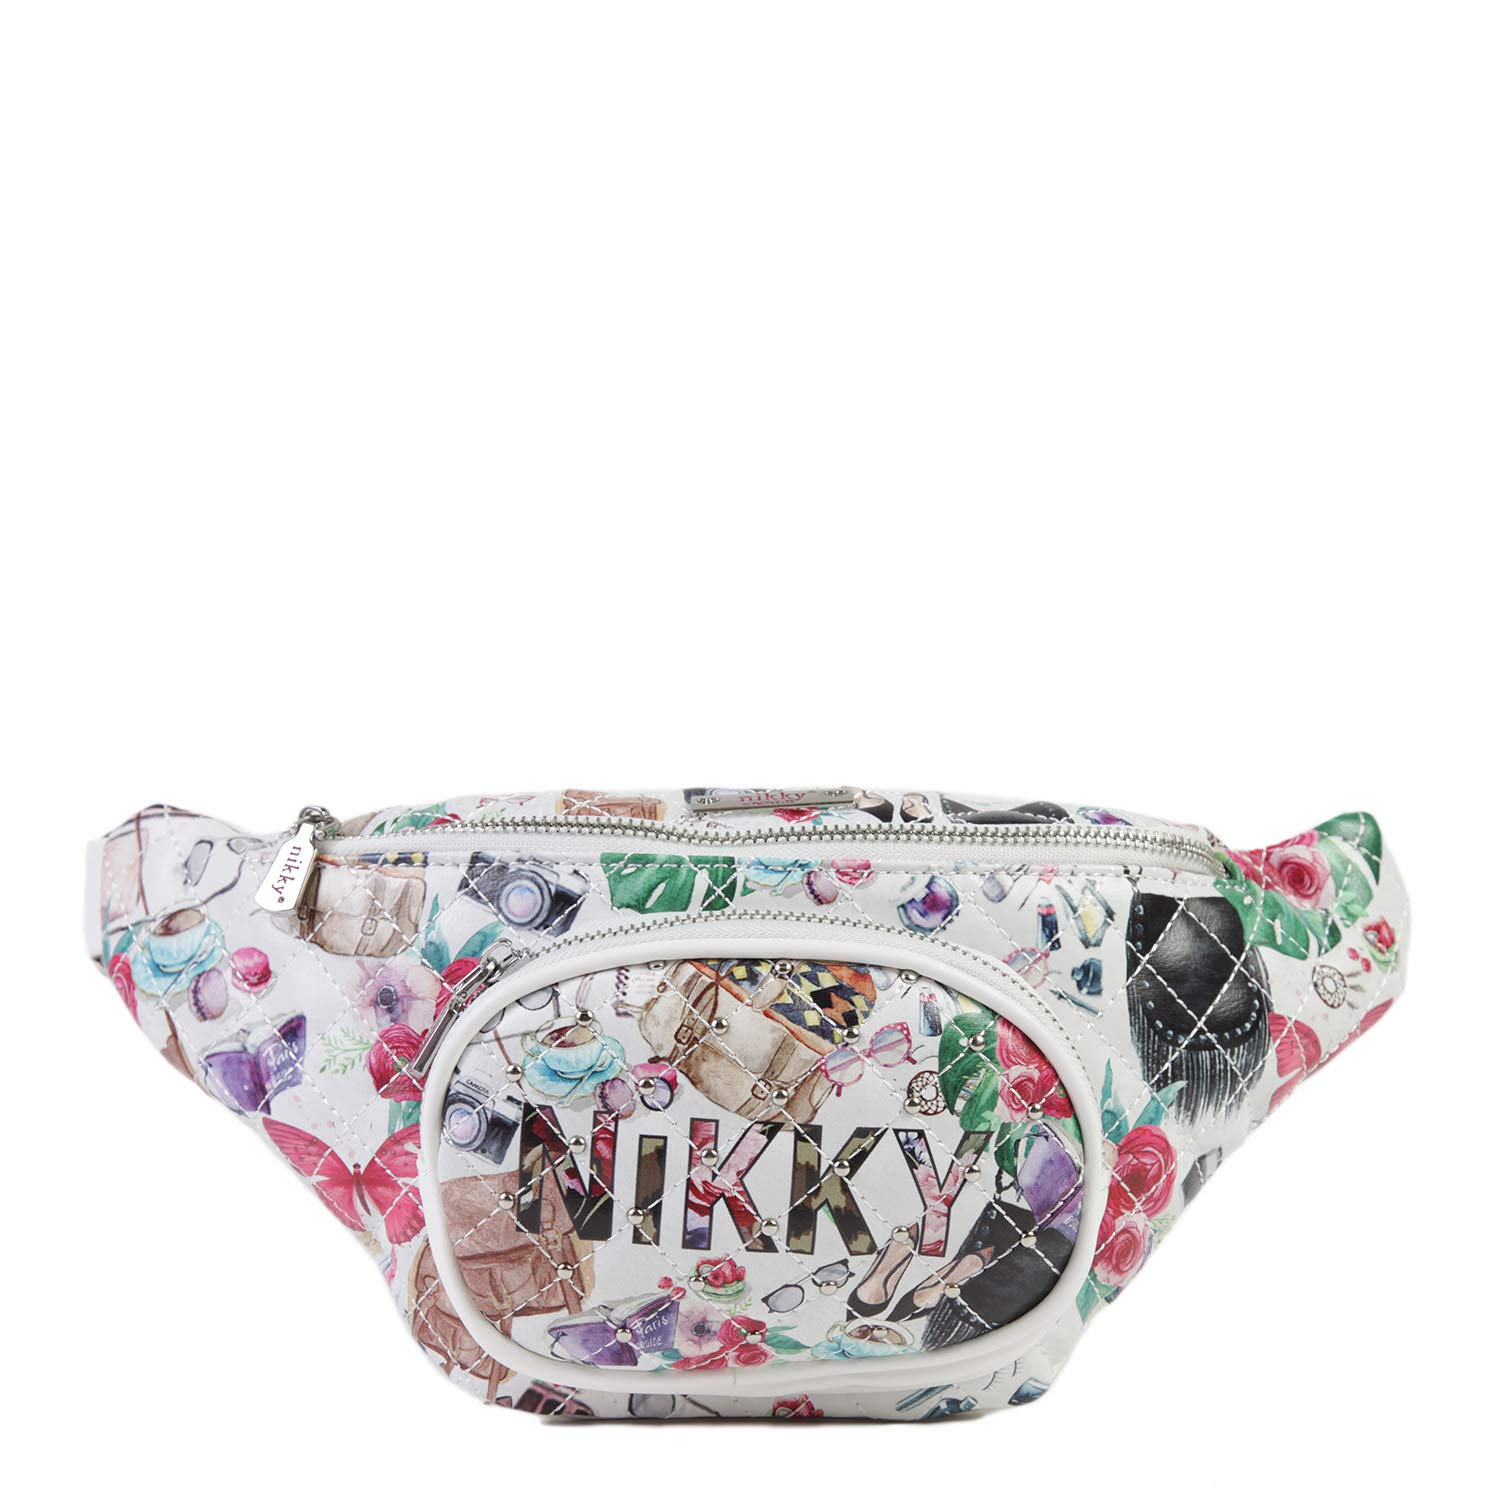 Spacious Compartment Adjustable Belt Goes Color Nikky Womens Quilted Large Printed White Fanny Pack One Size